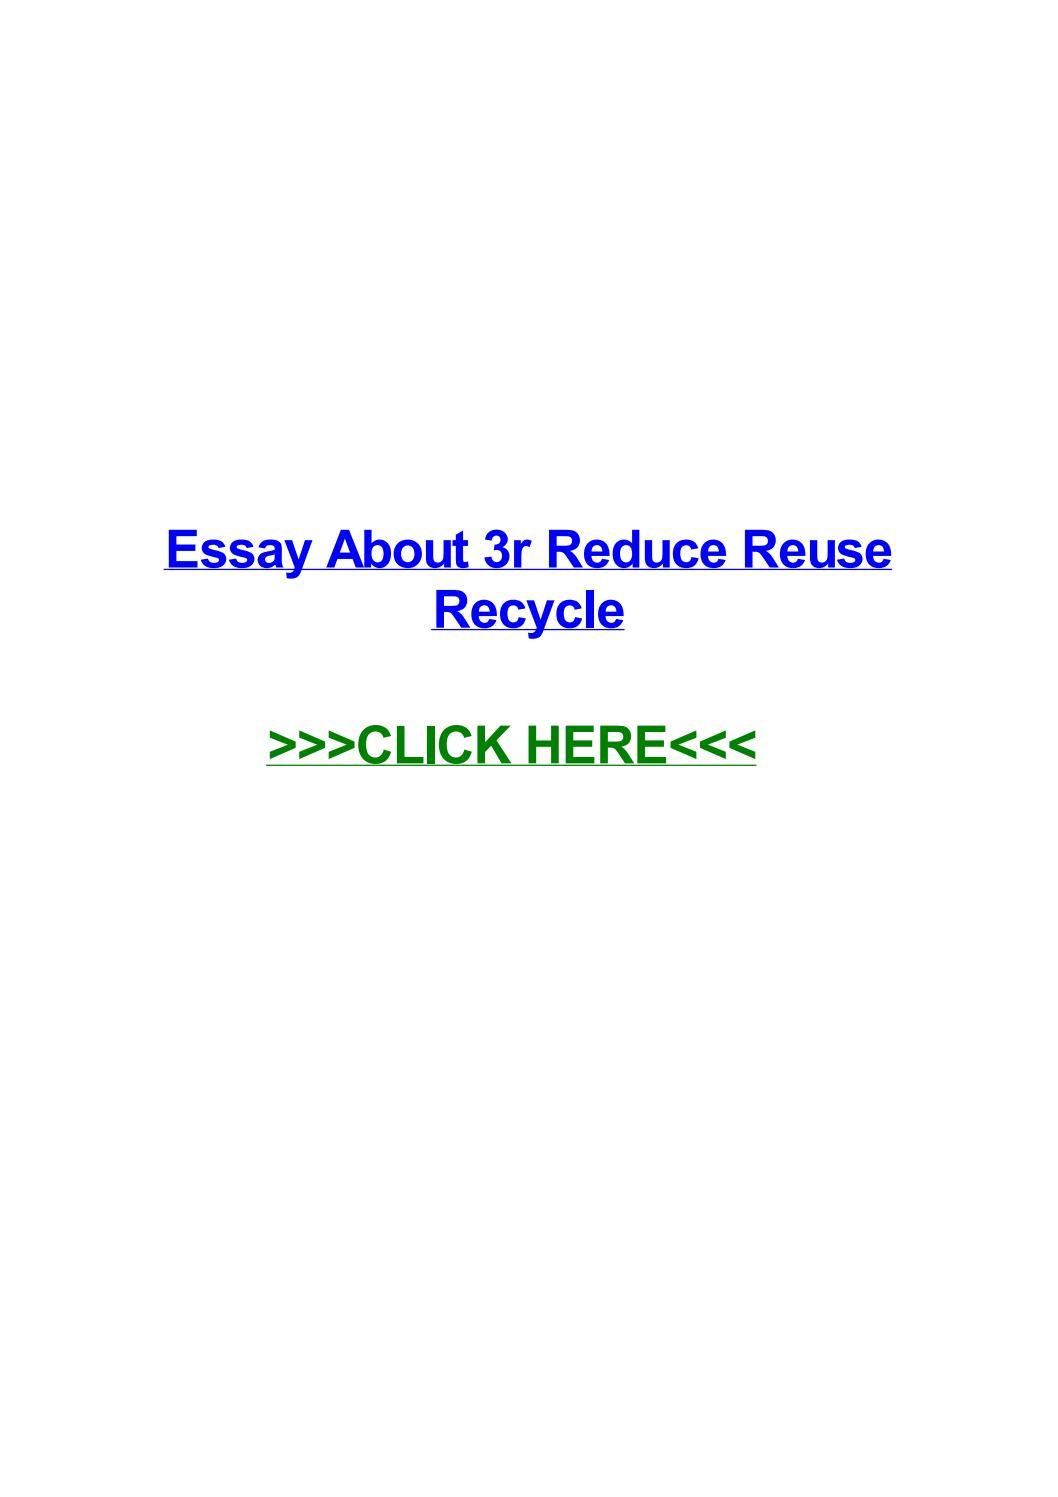 008 Essay On Reduce Reuse Recycle Example Page 1 Stirring Short In Hindi English Full